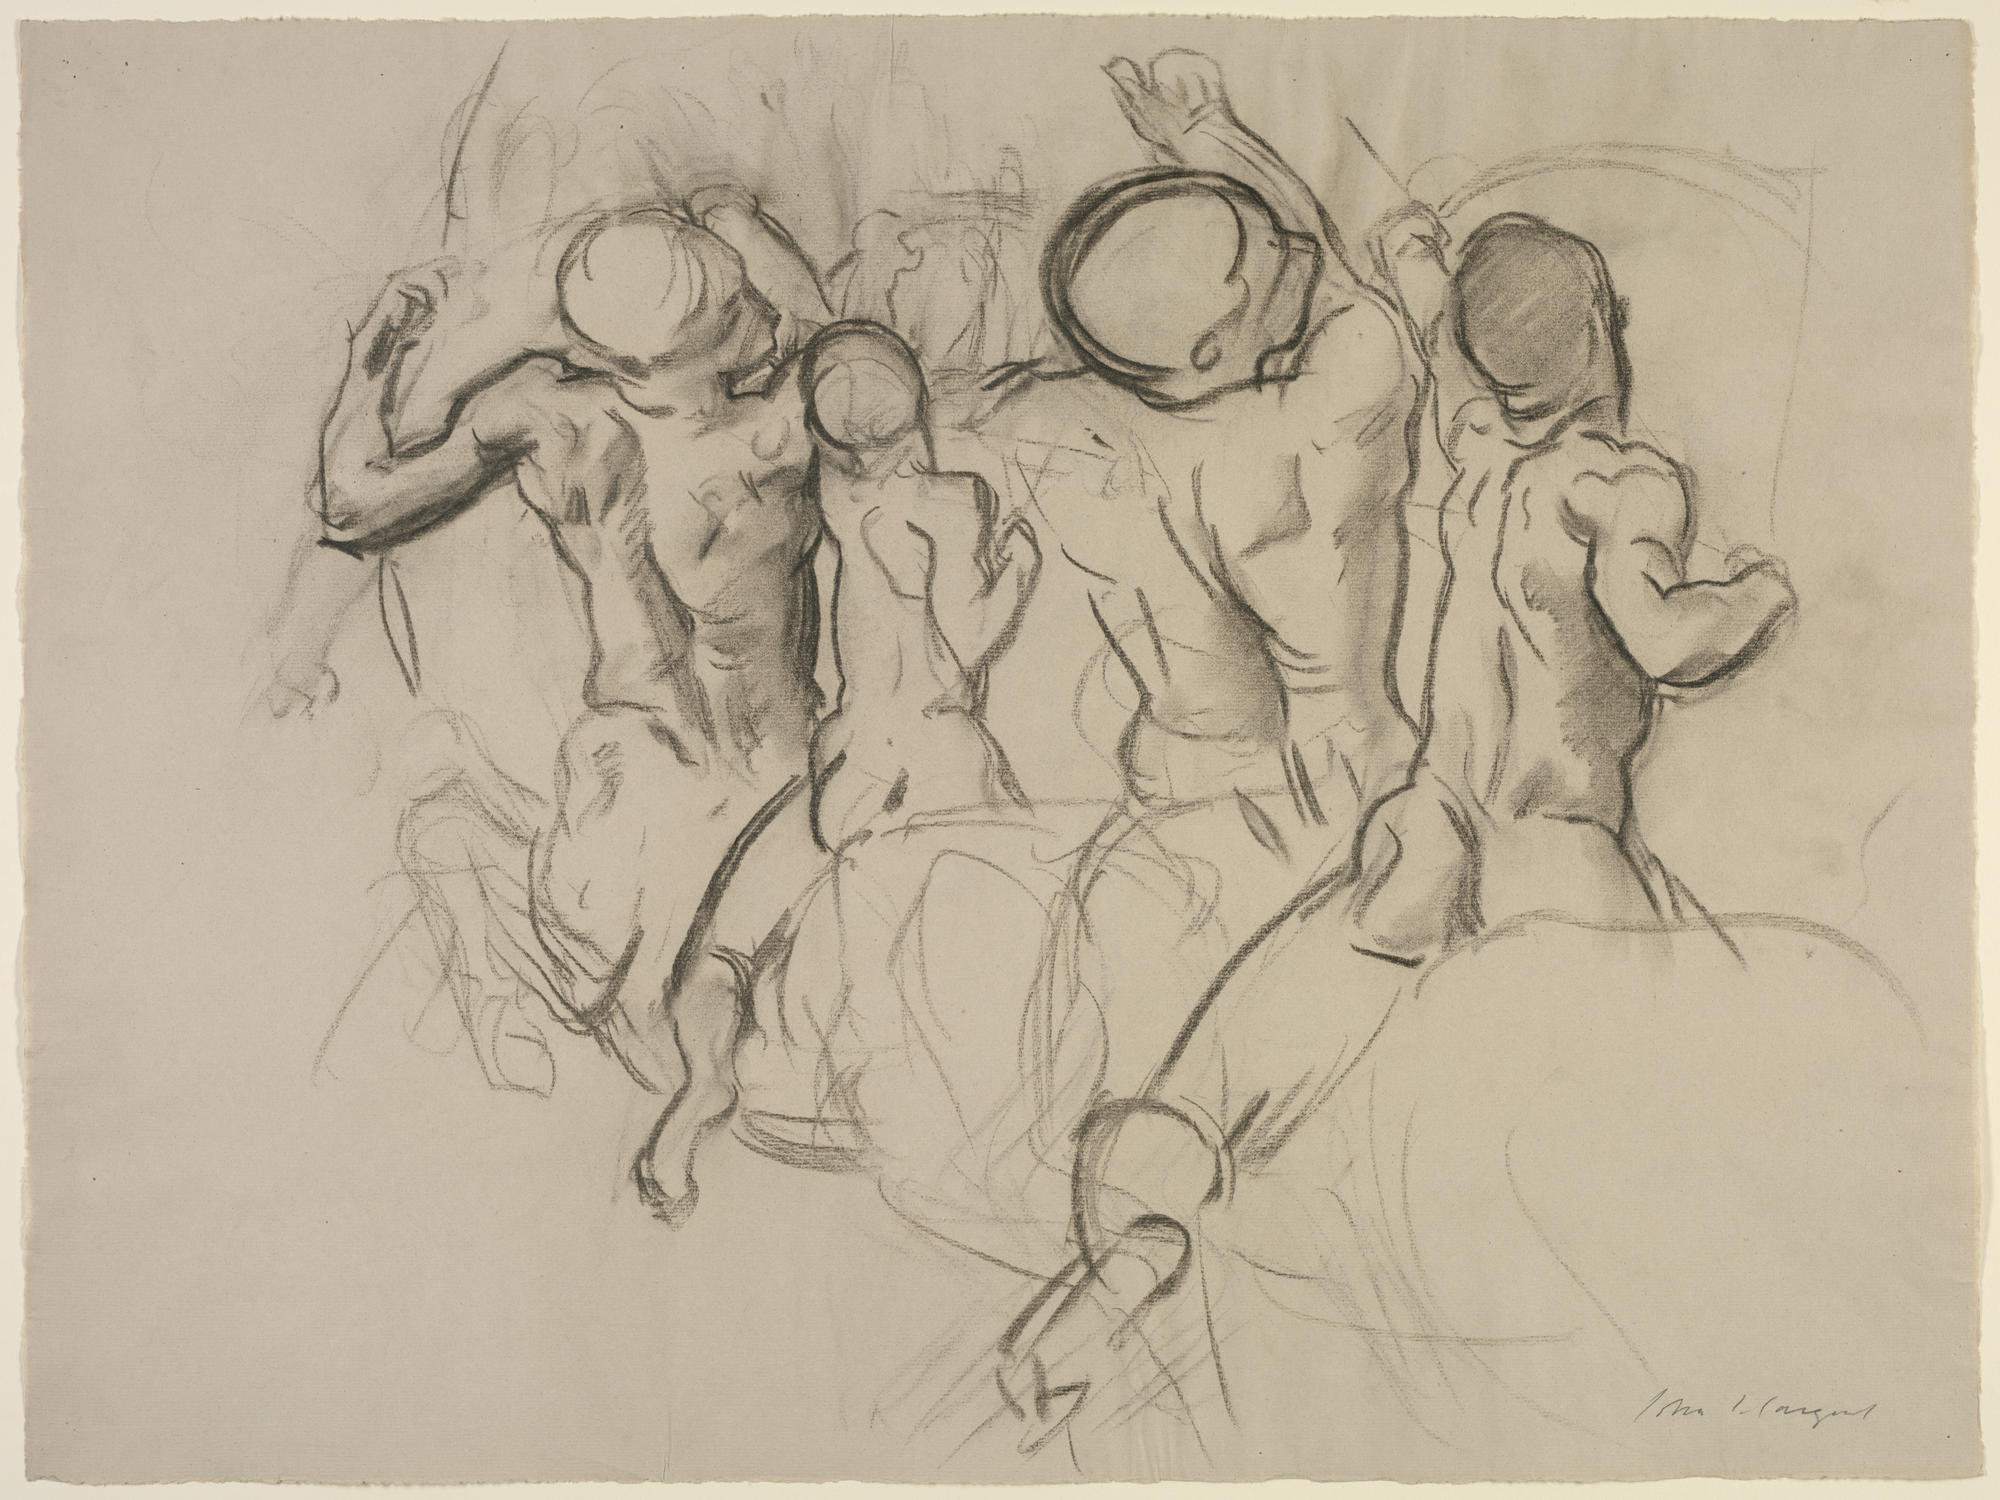 John Singer Sargent (American, 1856 - 1925), Study for Chiron and Achilles for the Rotunda or Grand Staircase of the Museum of Fine Arts, Boston, 1917-1922. Charcoal on paper, 47.2 x 63.2 cm (18 9/16 x 24 7/8 in.) Isabella Stewart Gardner Museum, Boston (S.G.Sar.4.1.8)